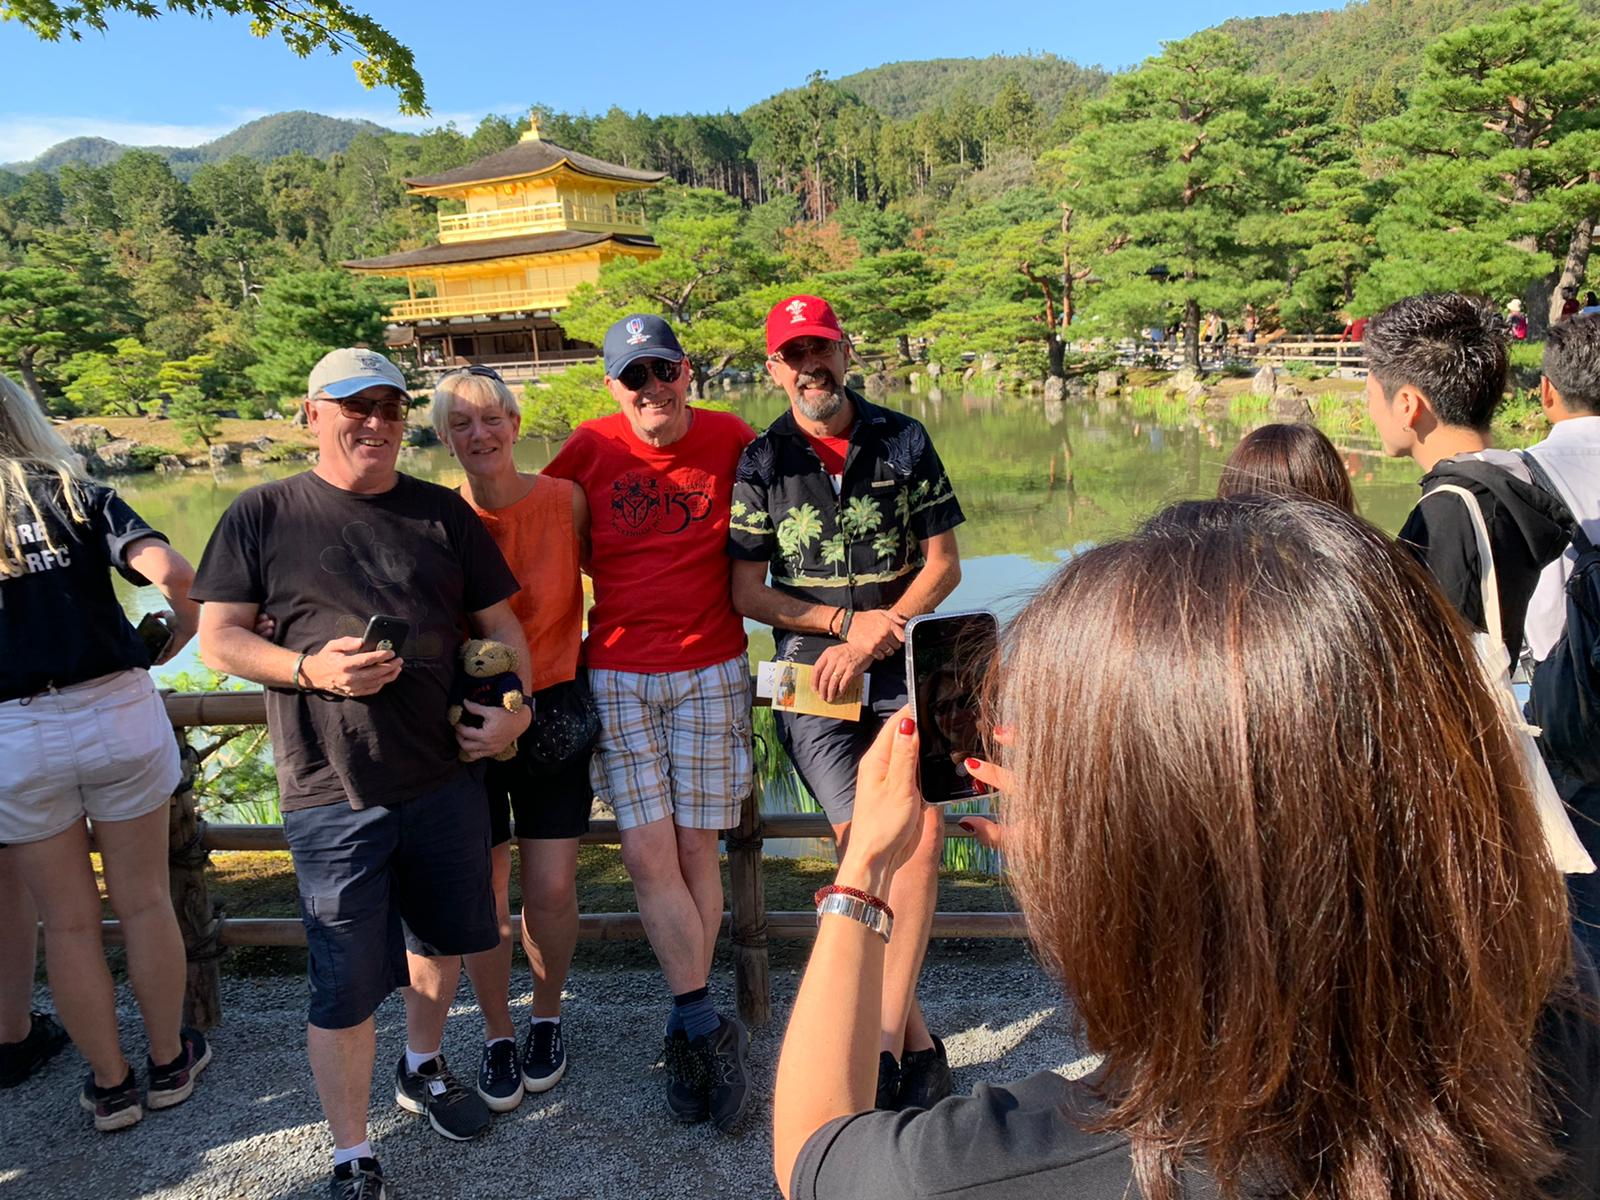 Venatour at Rugby World Cup 2019™, Sports Tours